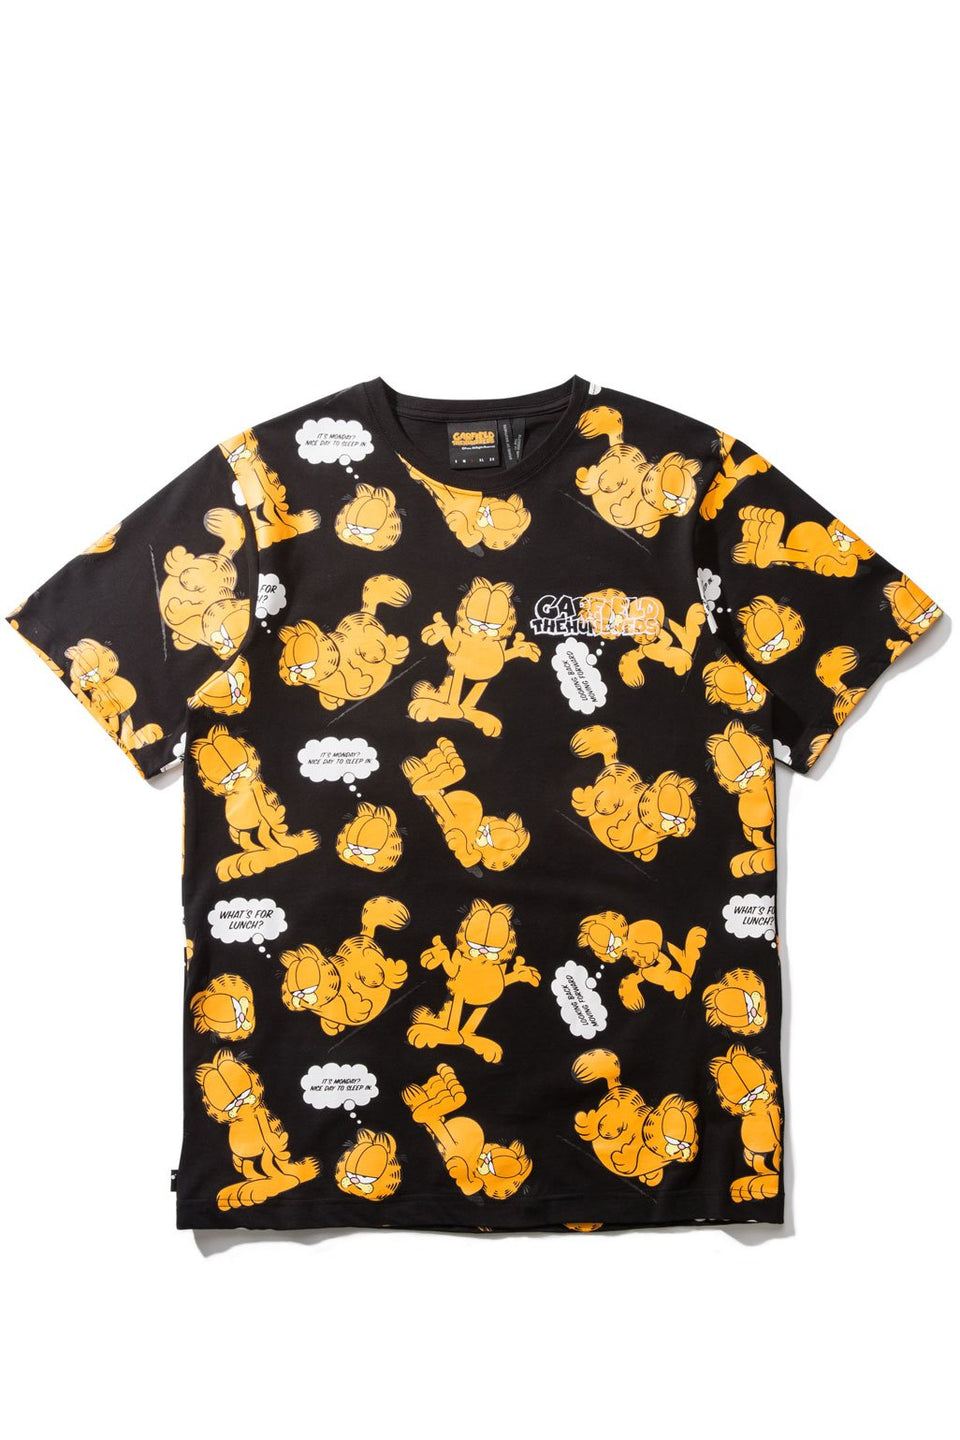 Garfield Mood T-Shirt